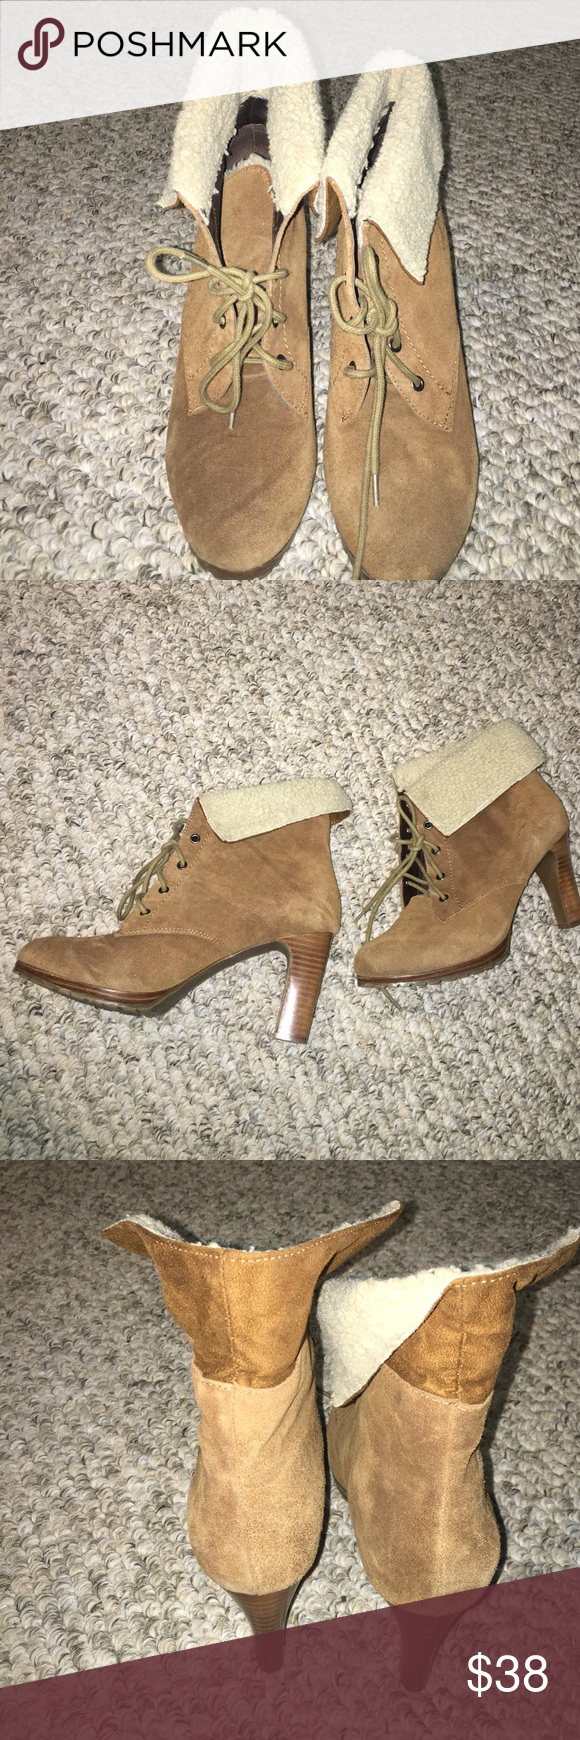 Suede Booties One Wear So Cute Rugged Bottom Cream Texture Lining Camel Color Alfani Shoes Heeled